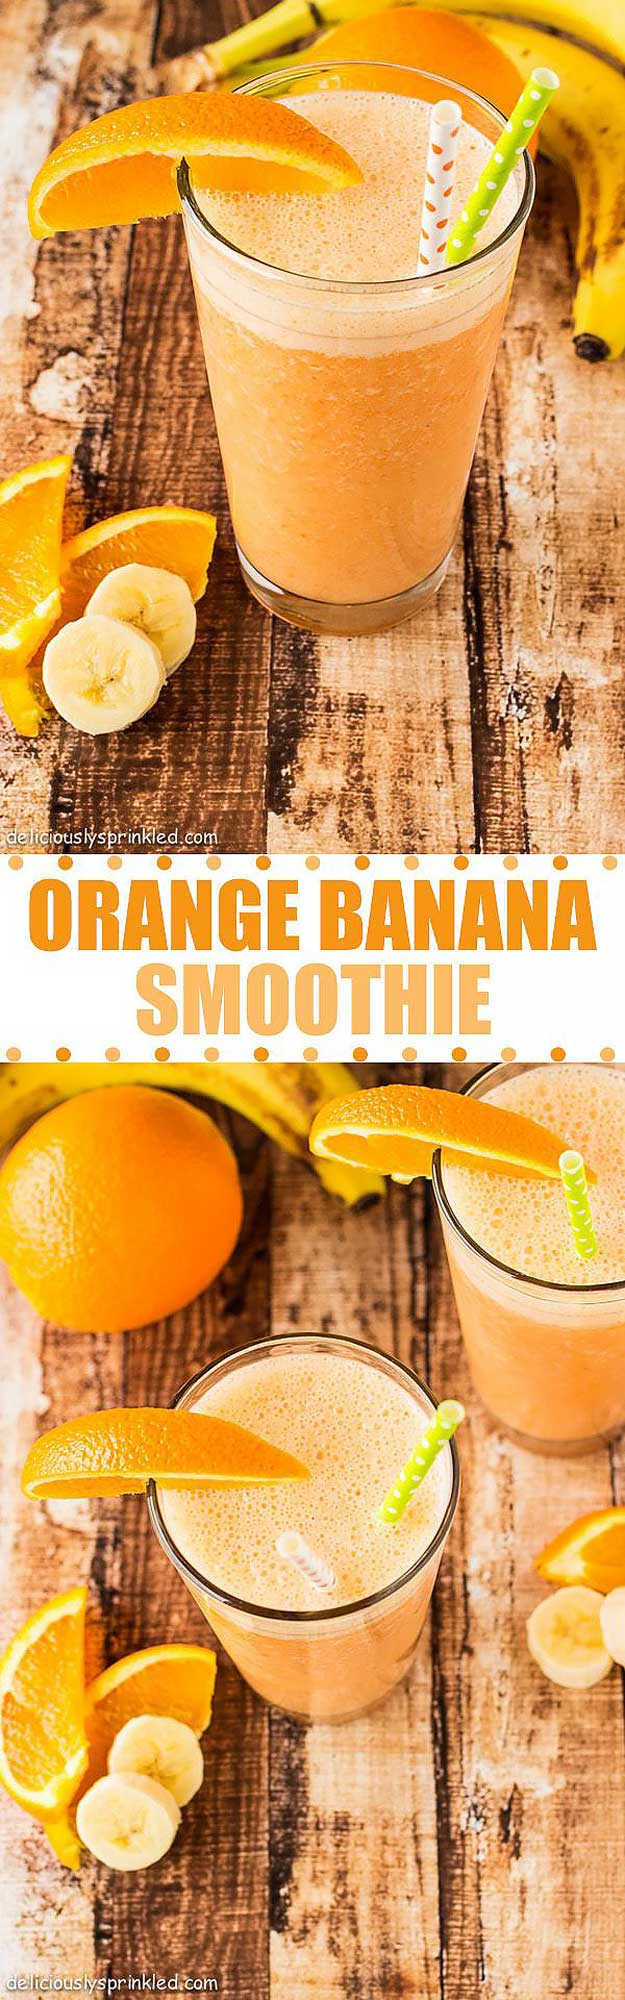 Orange-Banana-healthy-Smoothie-recipe